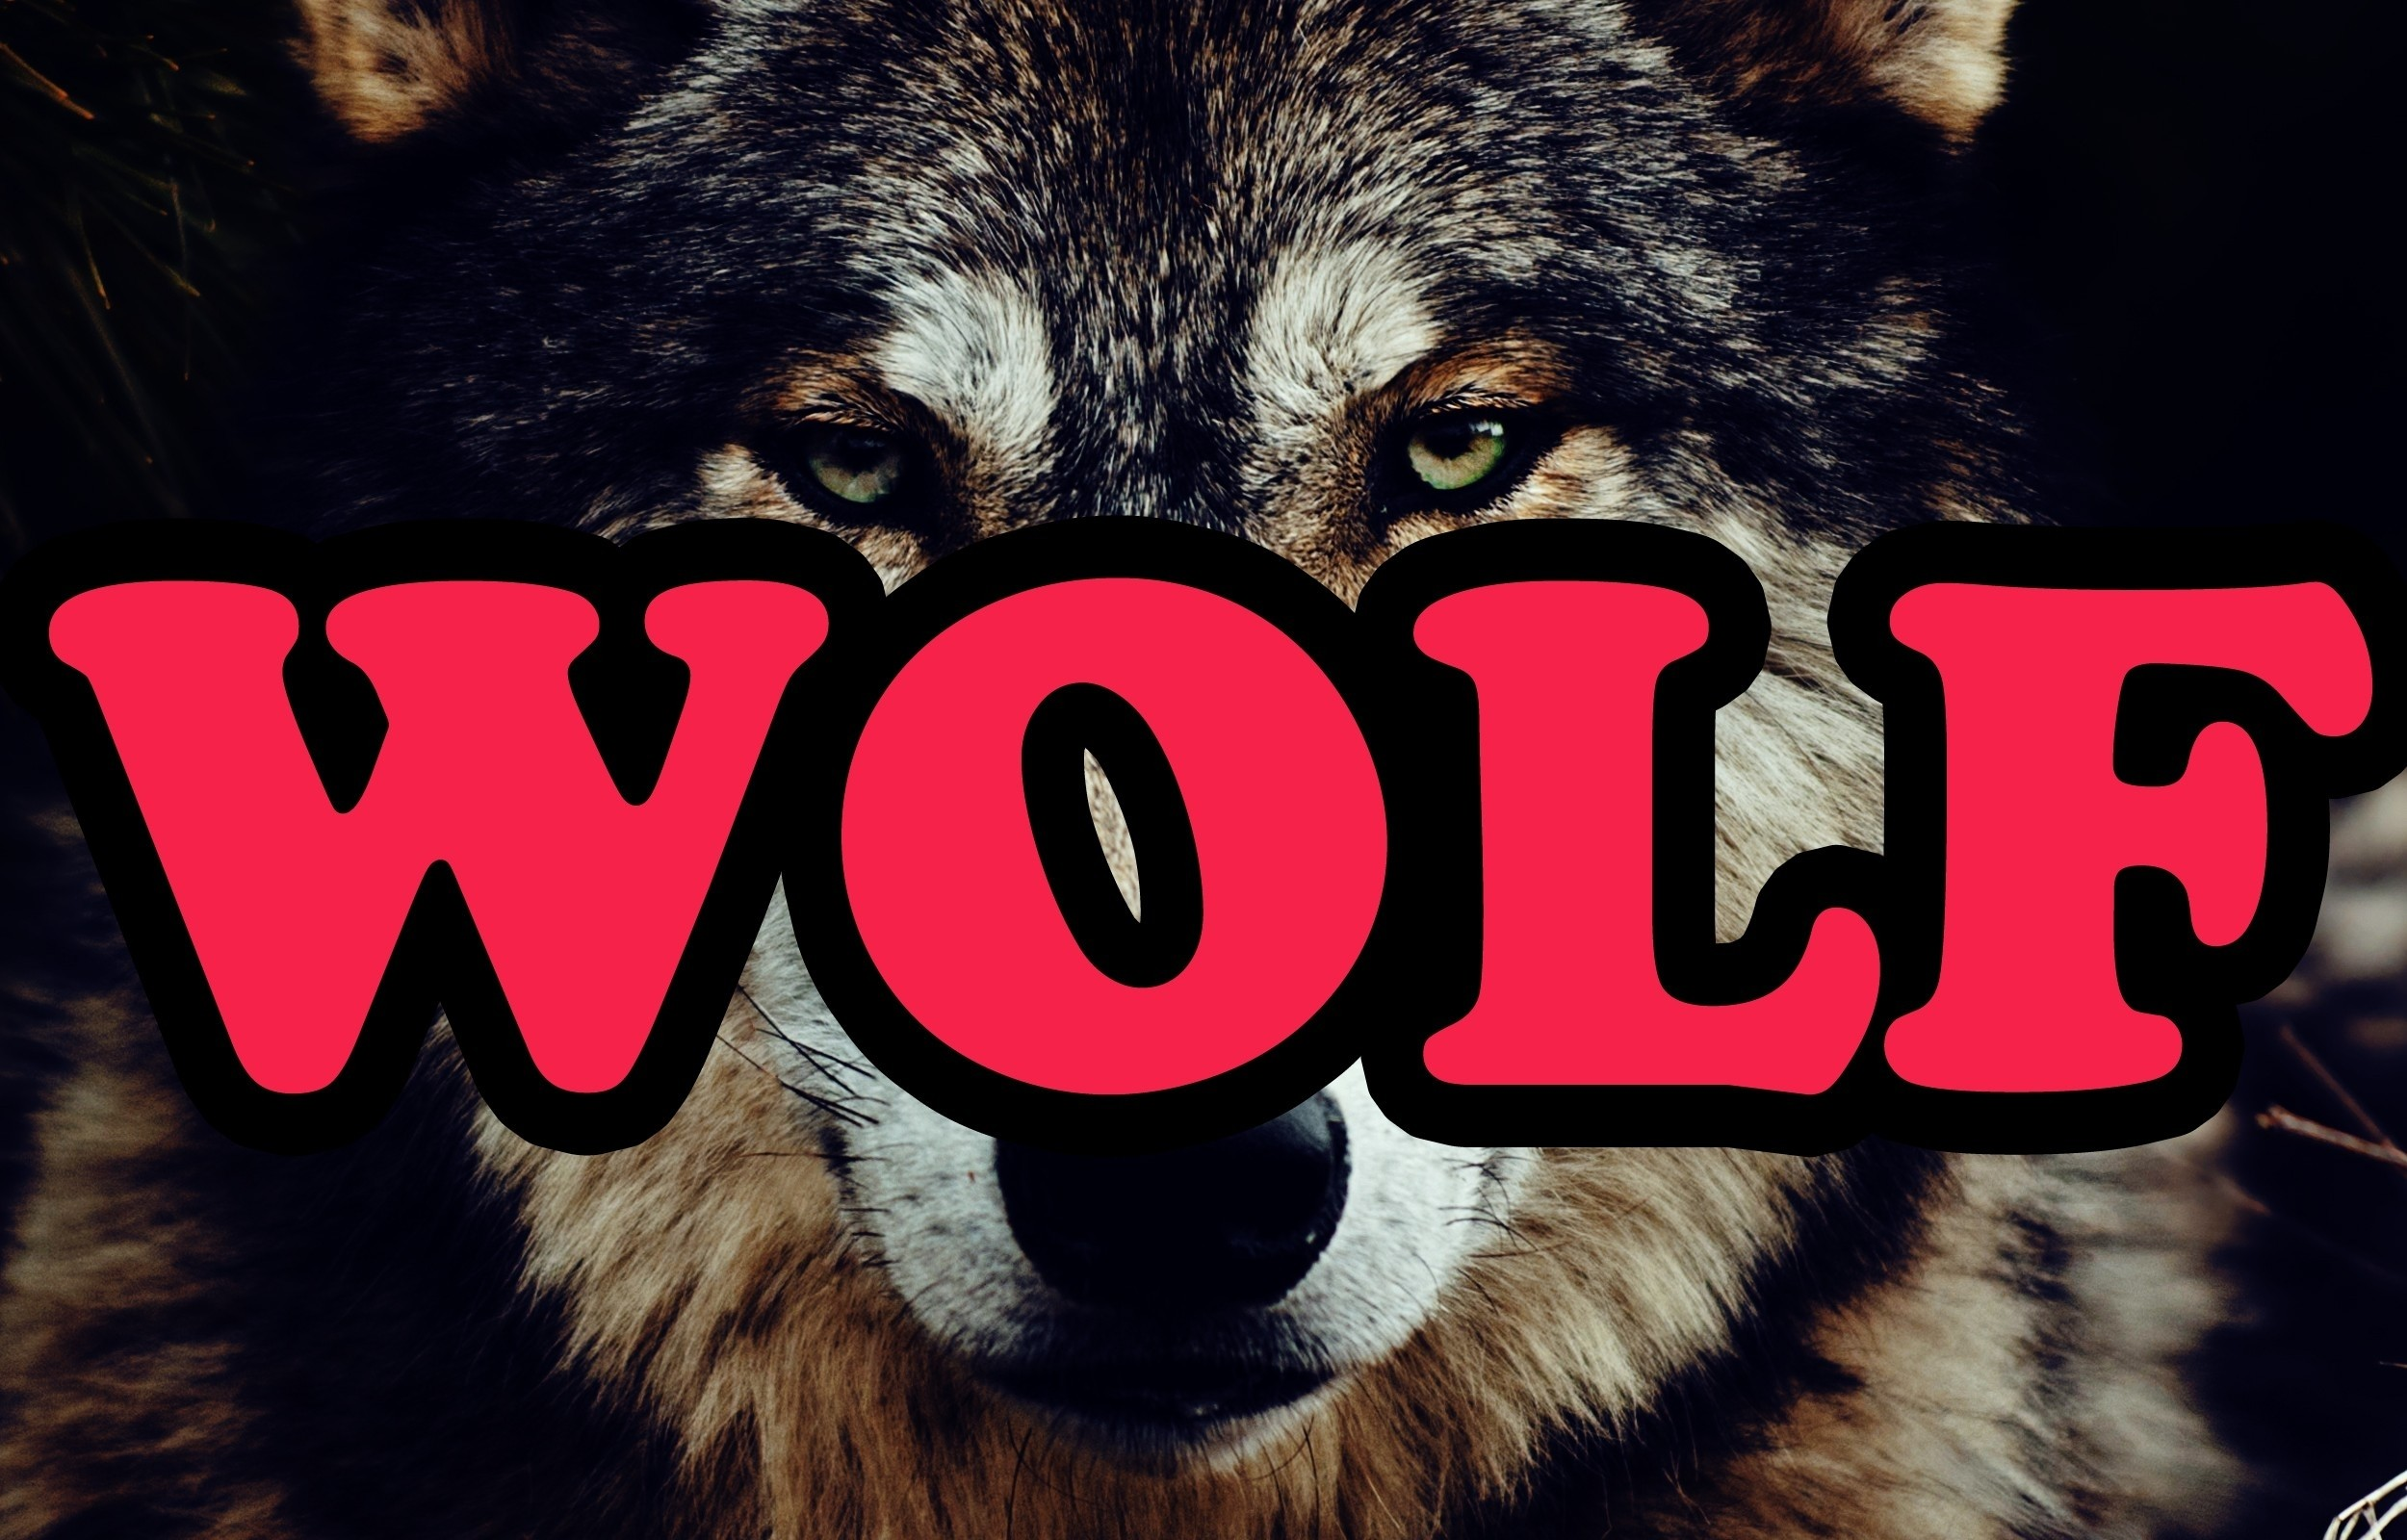 Res: 2500x1600, Alternative tyler the creator odd future wolves wolf gang Wallpaper